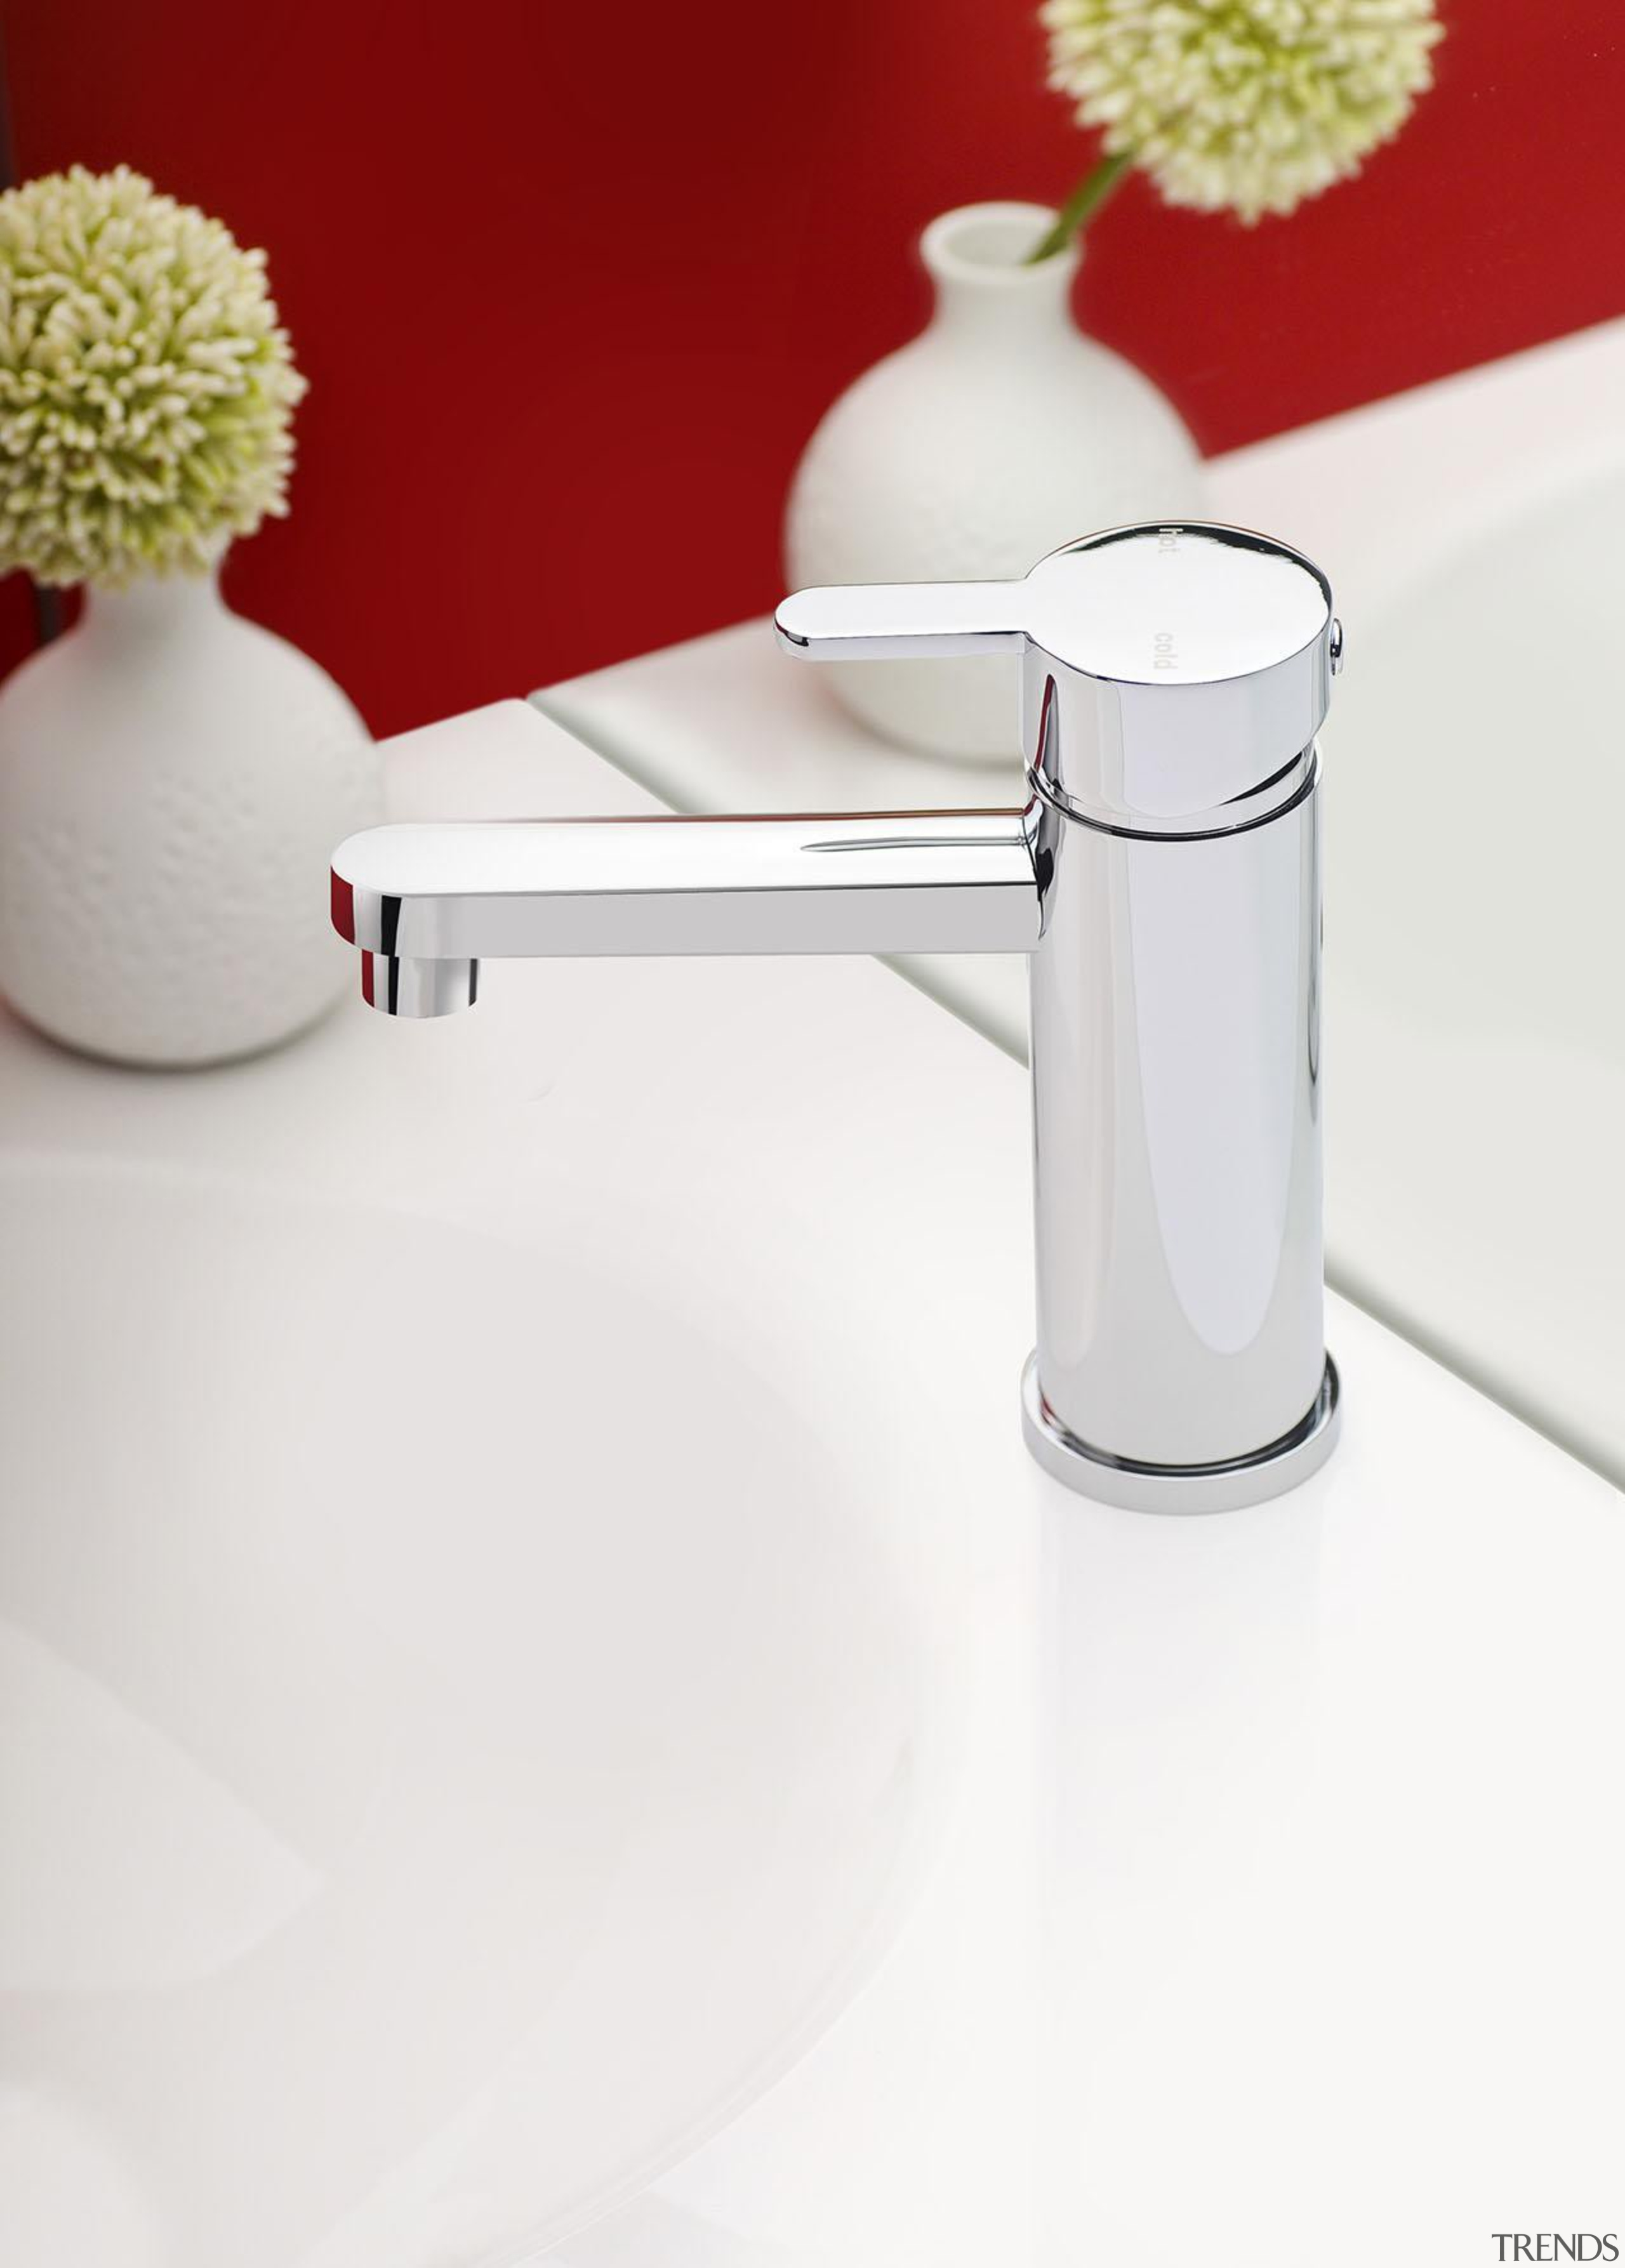 Mia Basin Mixer is a tap that compliments plumbing fixture, product design, table, tap, white